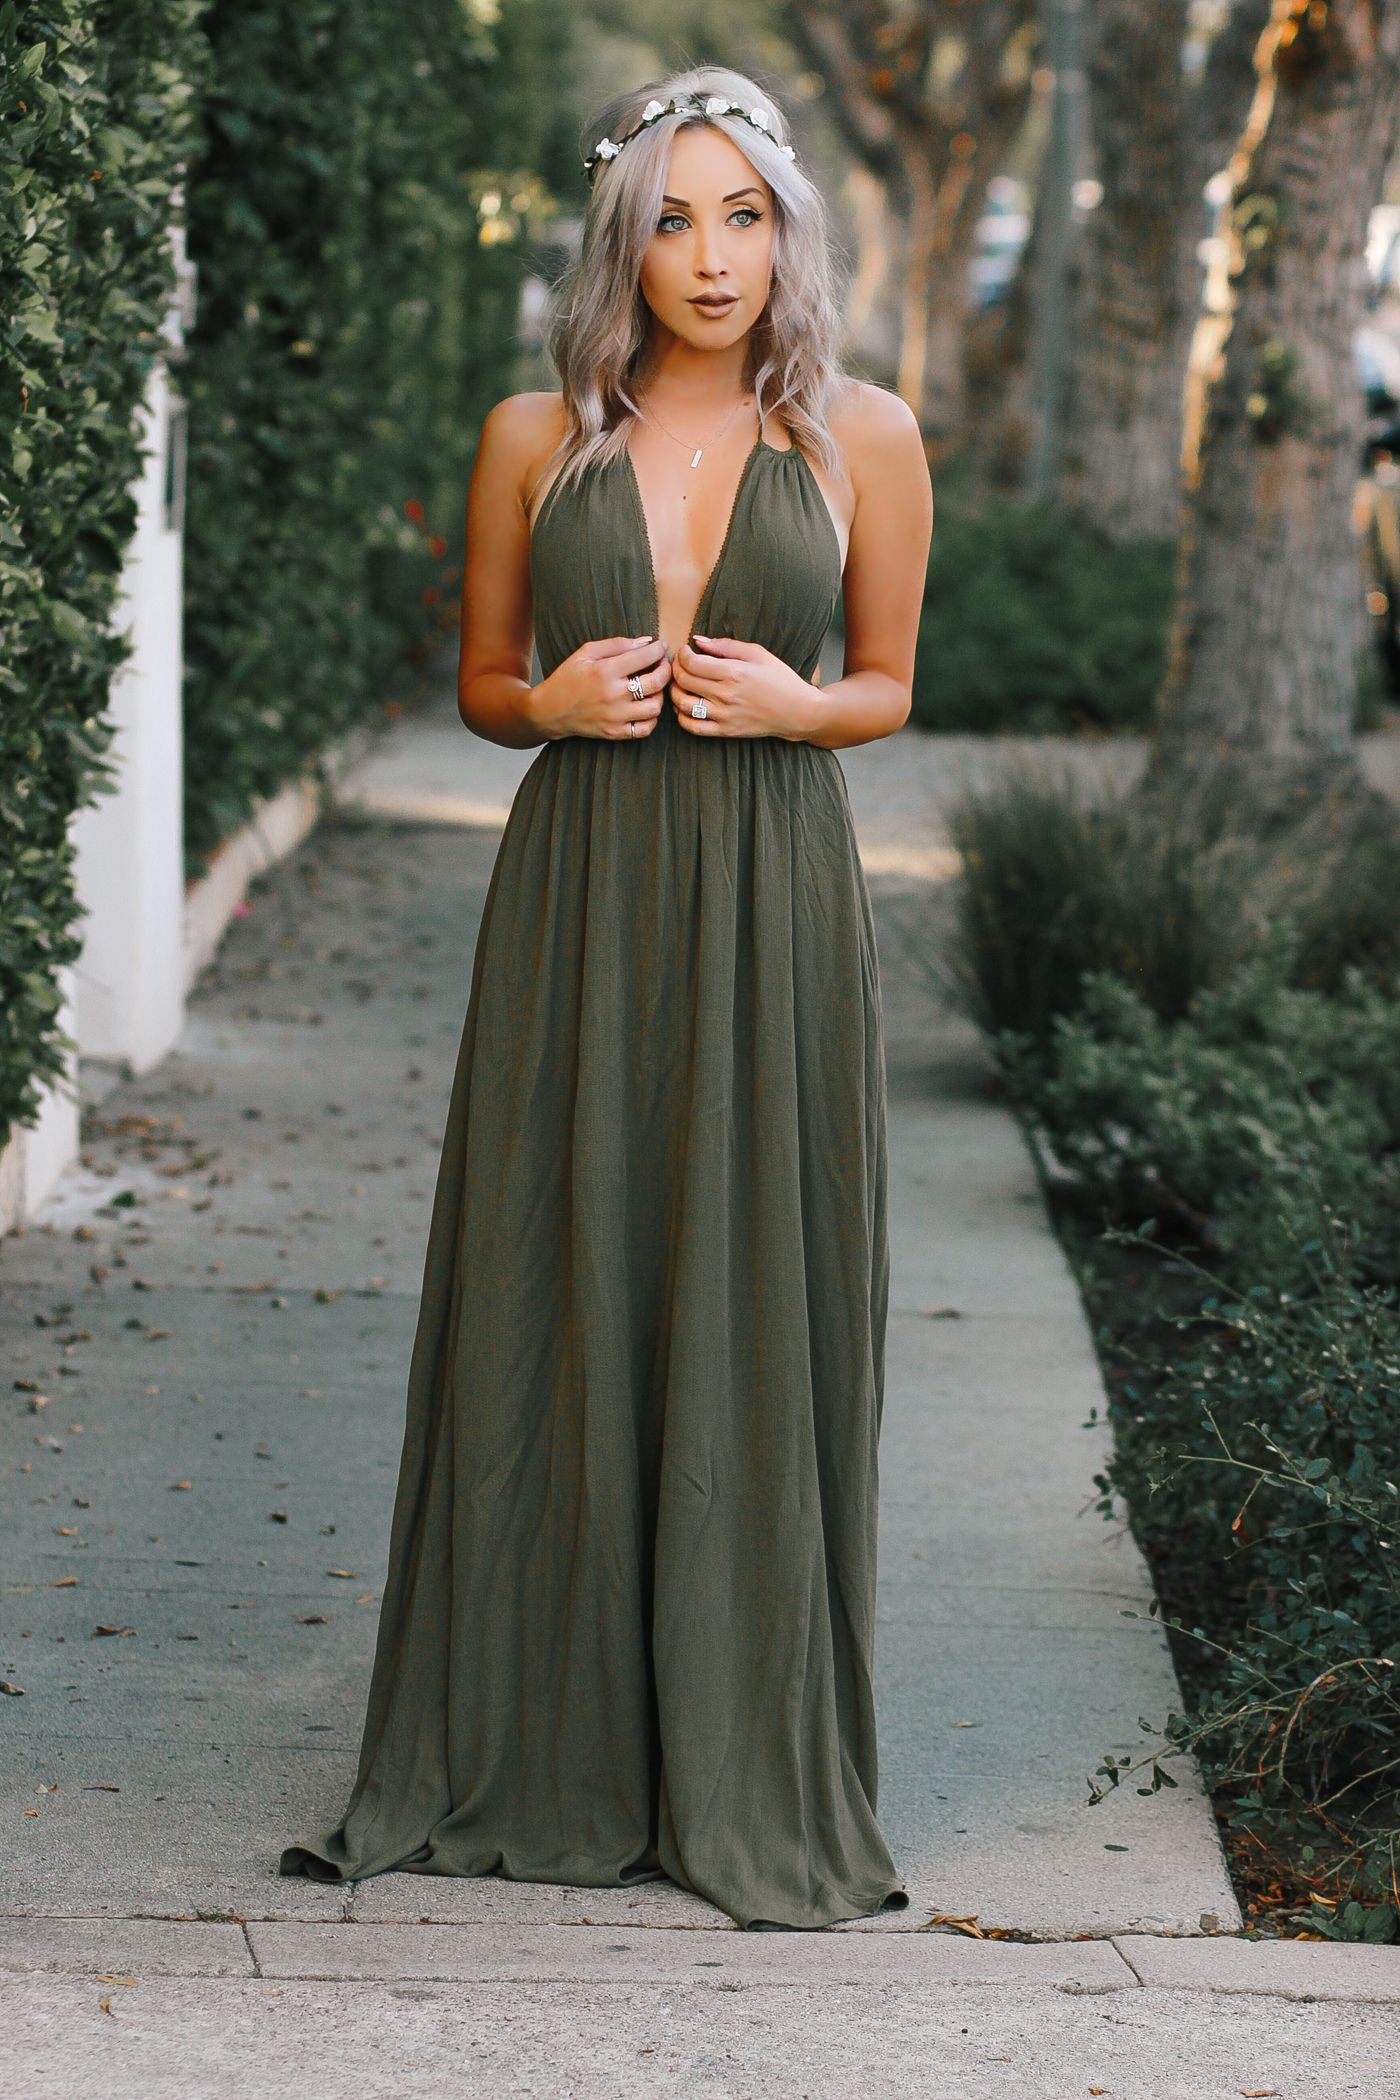 Blonde Bohemian Blondie In The City Olive Green Bridesmaid Dresses Bridesmaid Dresses Boho Green Bridesmaid Dresses